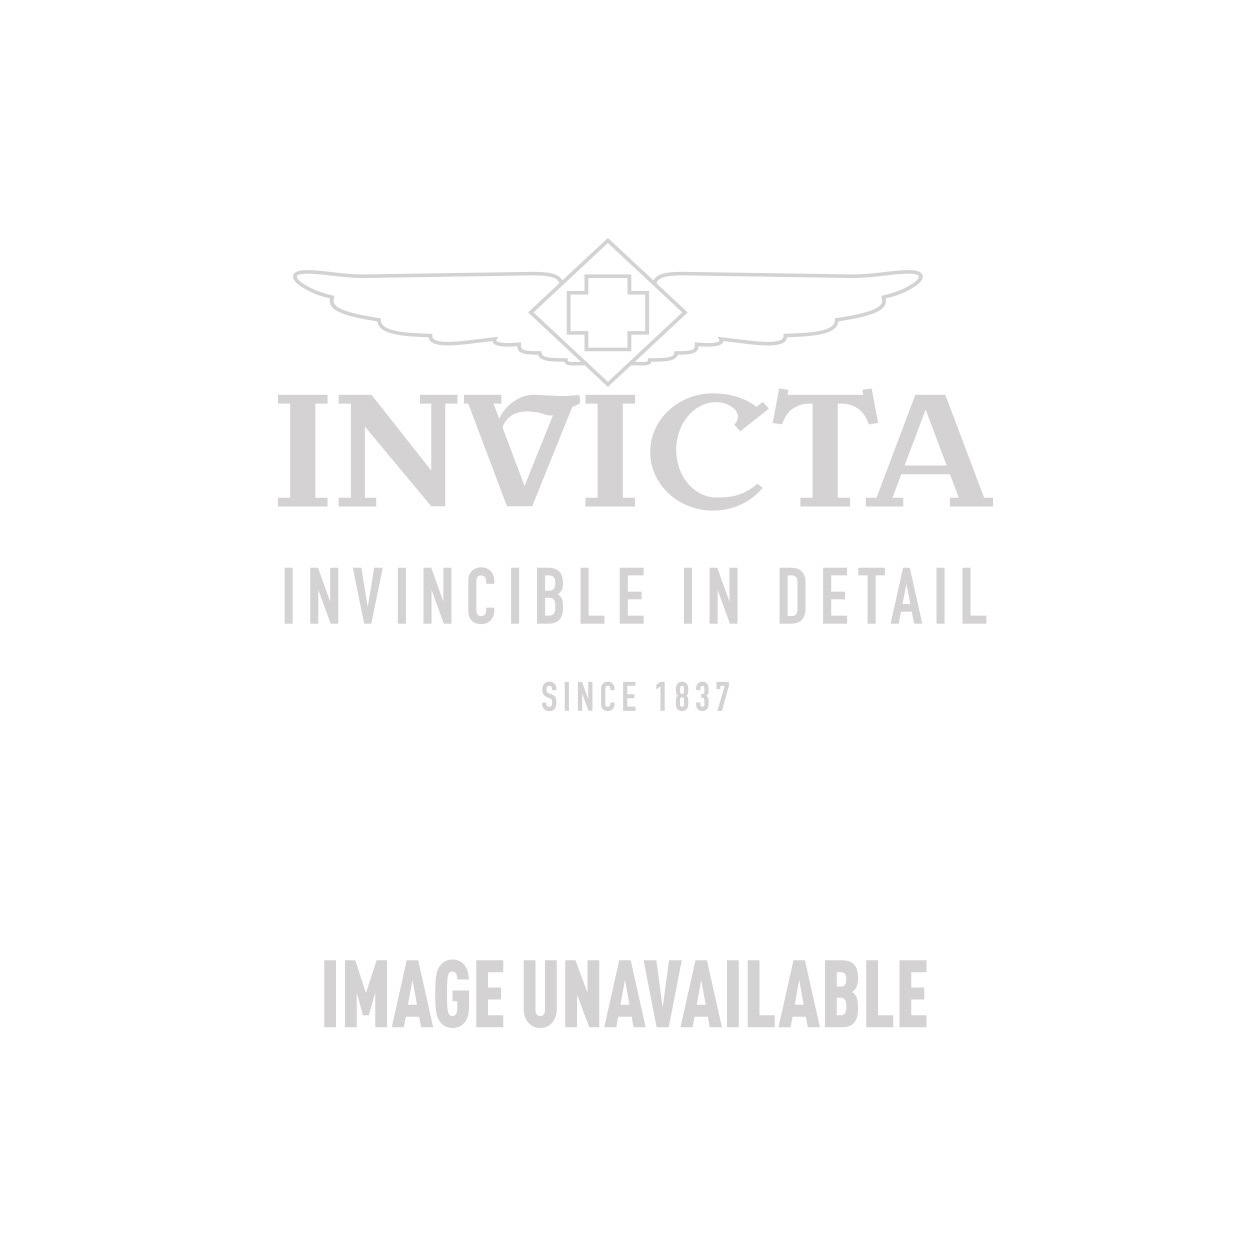 Invicta Wildflower Swiss Movement Quartz Watch - Stainless Steel case Stainless Steel band - Model 10676